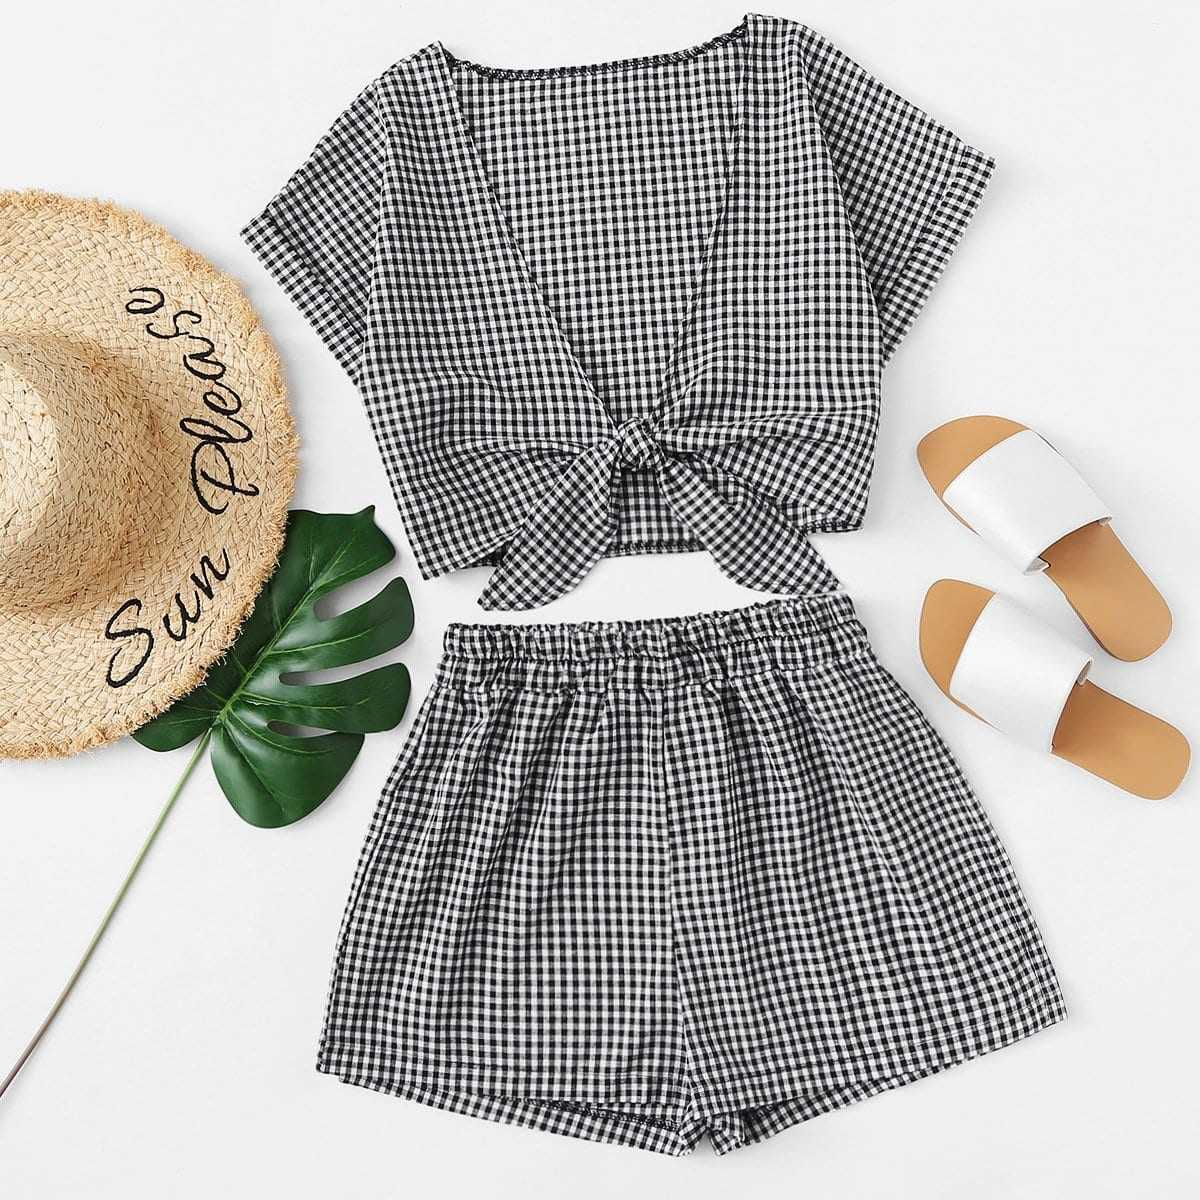 Tie Front Gingham Top With Shorts in Black and White by ROMWE on GOOFASH